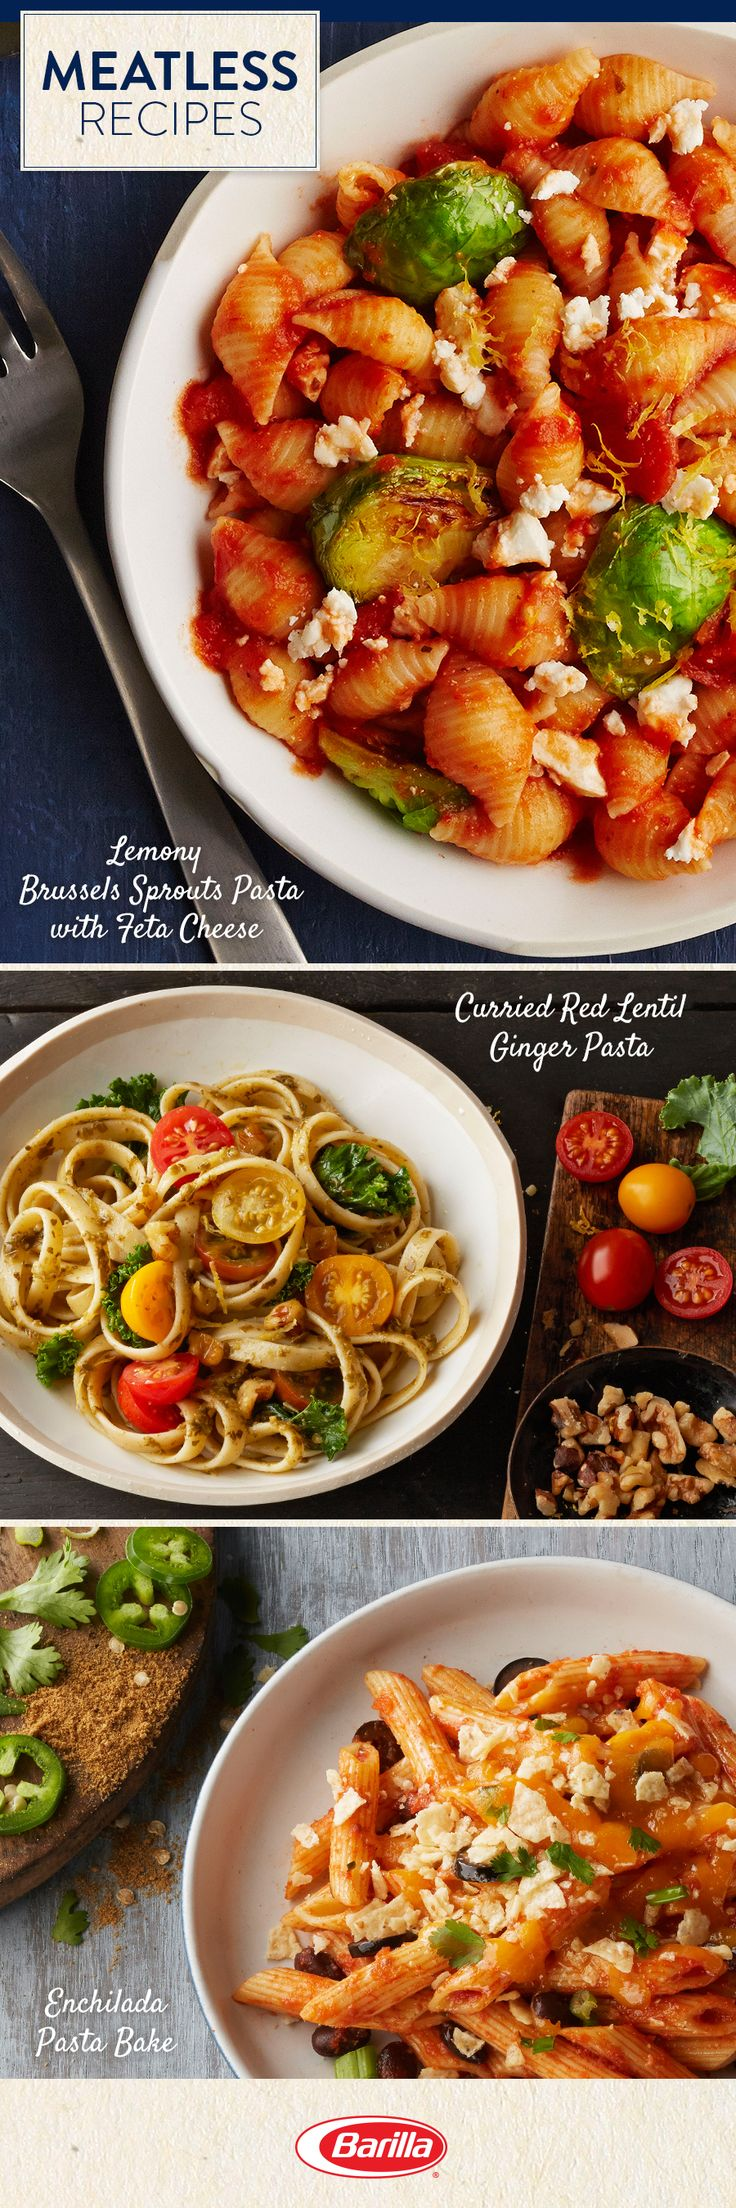 Vegetarians and meat-eaters alike will love these meatless recipes! Save this pin for delicious pasta recipes, chock full of vegetables like Brussels sprouts, tomatoes and jalapenos.